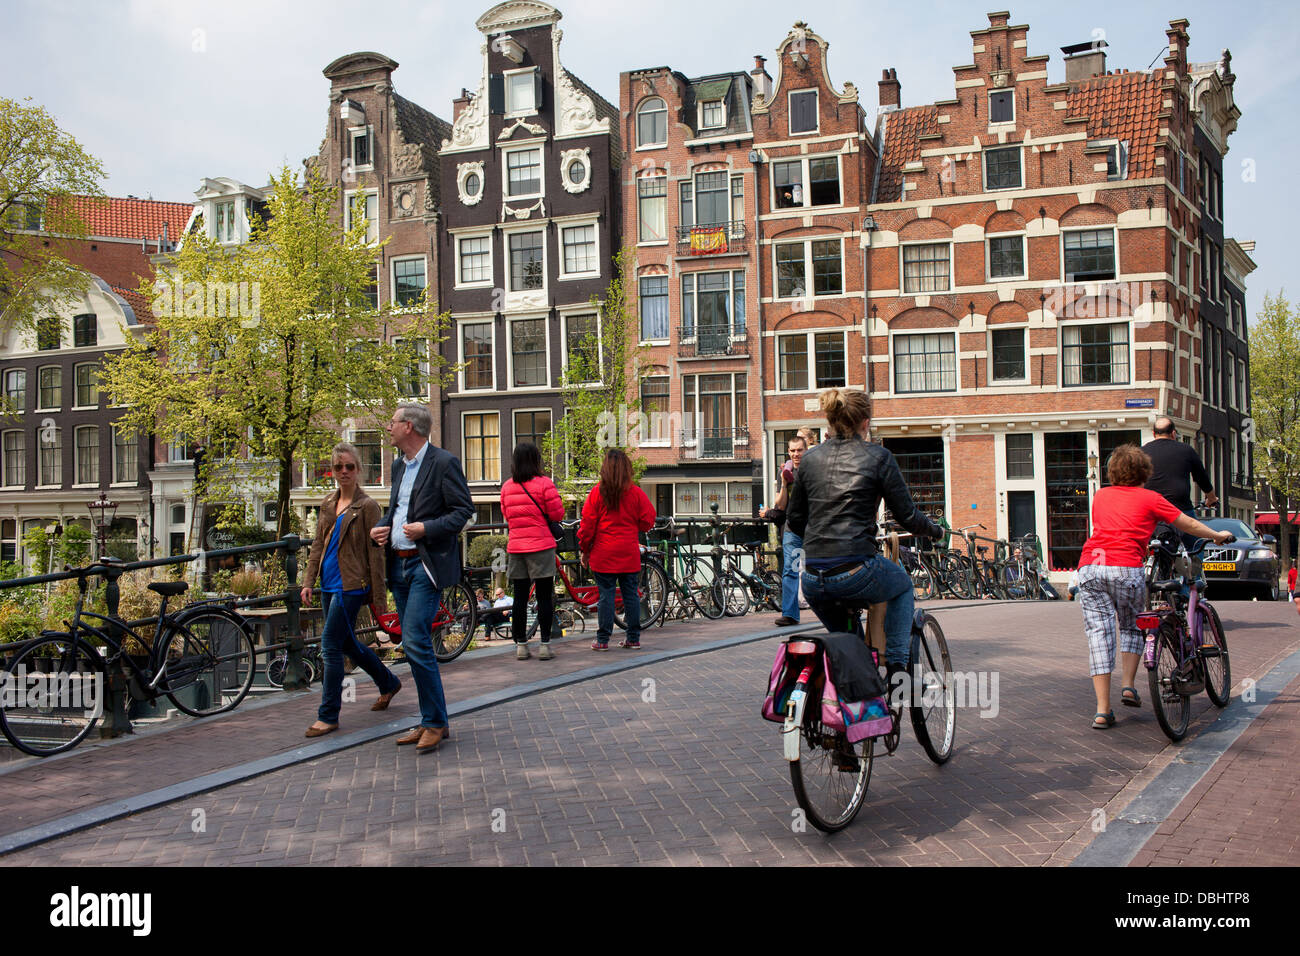 People on a bridge and houses on Prinsengracht, city of Amsterdam, Netherlands. - Stock Image